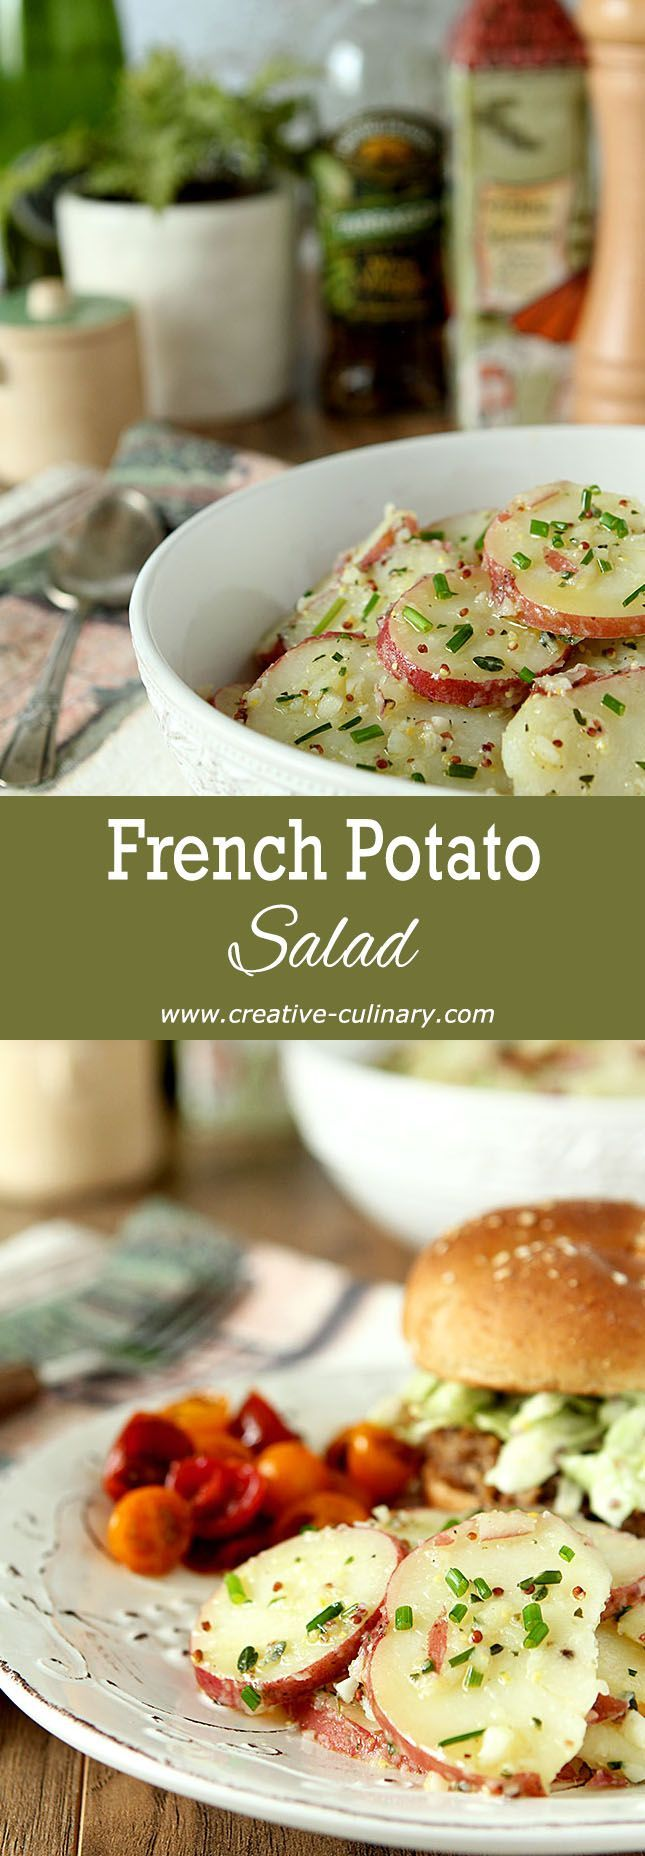 25 Best Ideas About French Potato Salad On Pinterest French